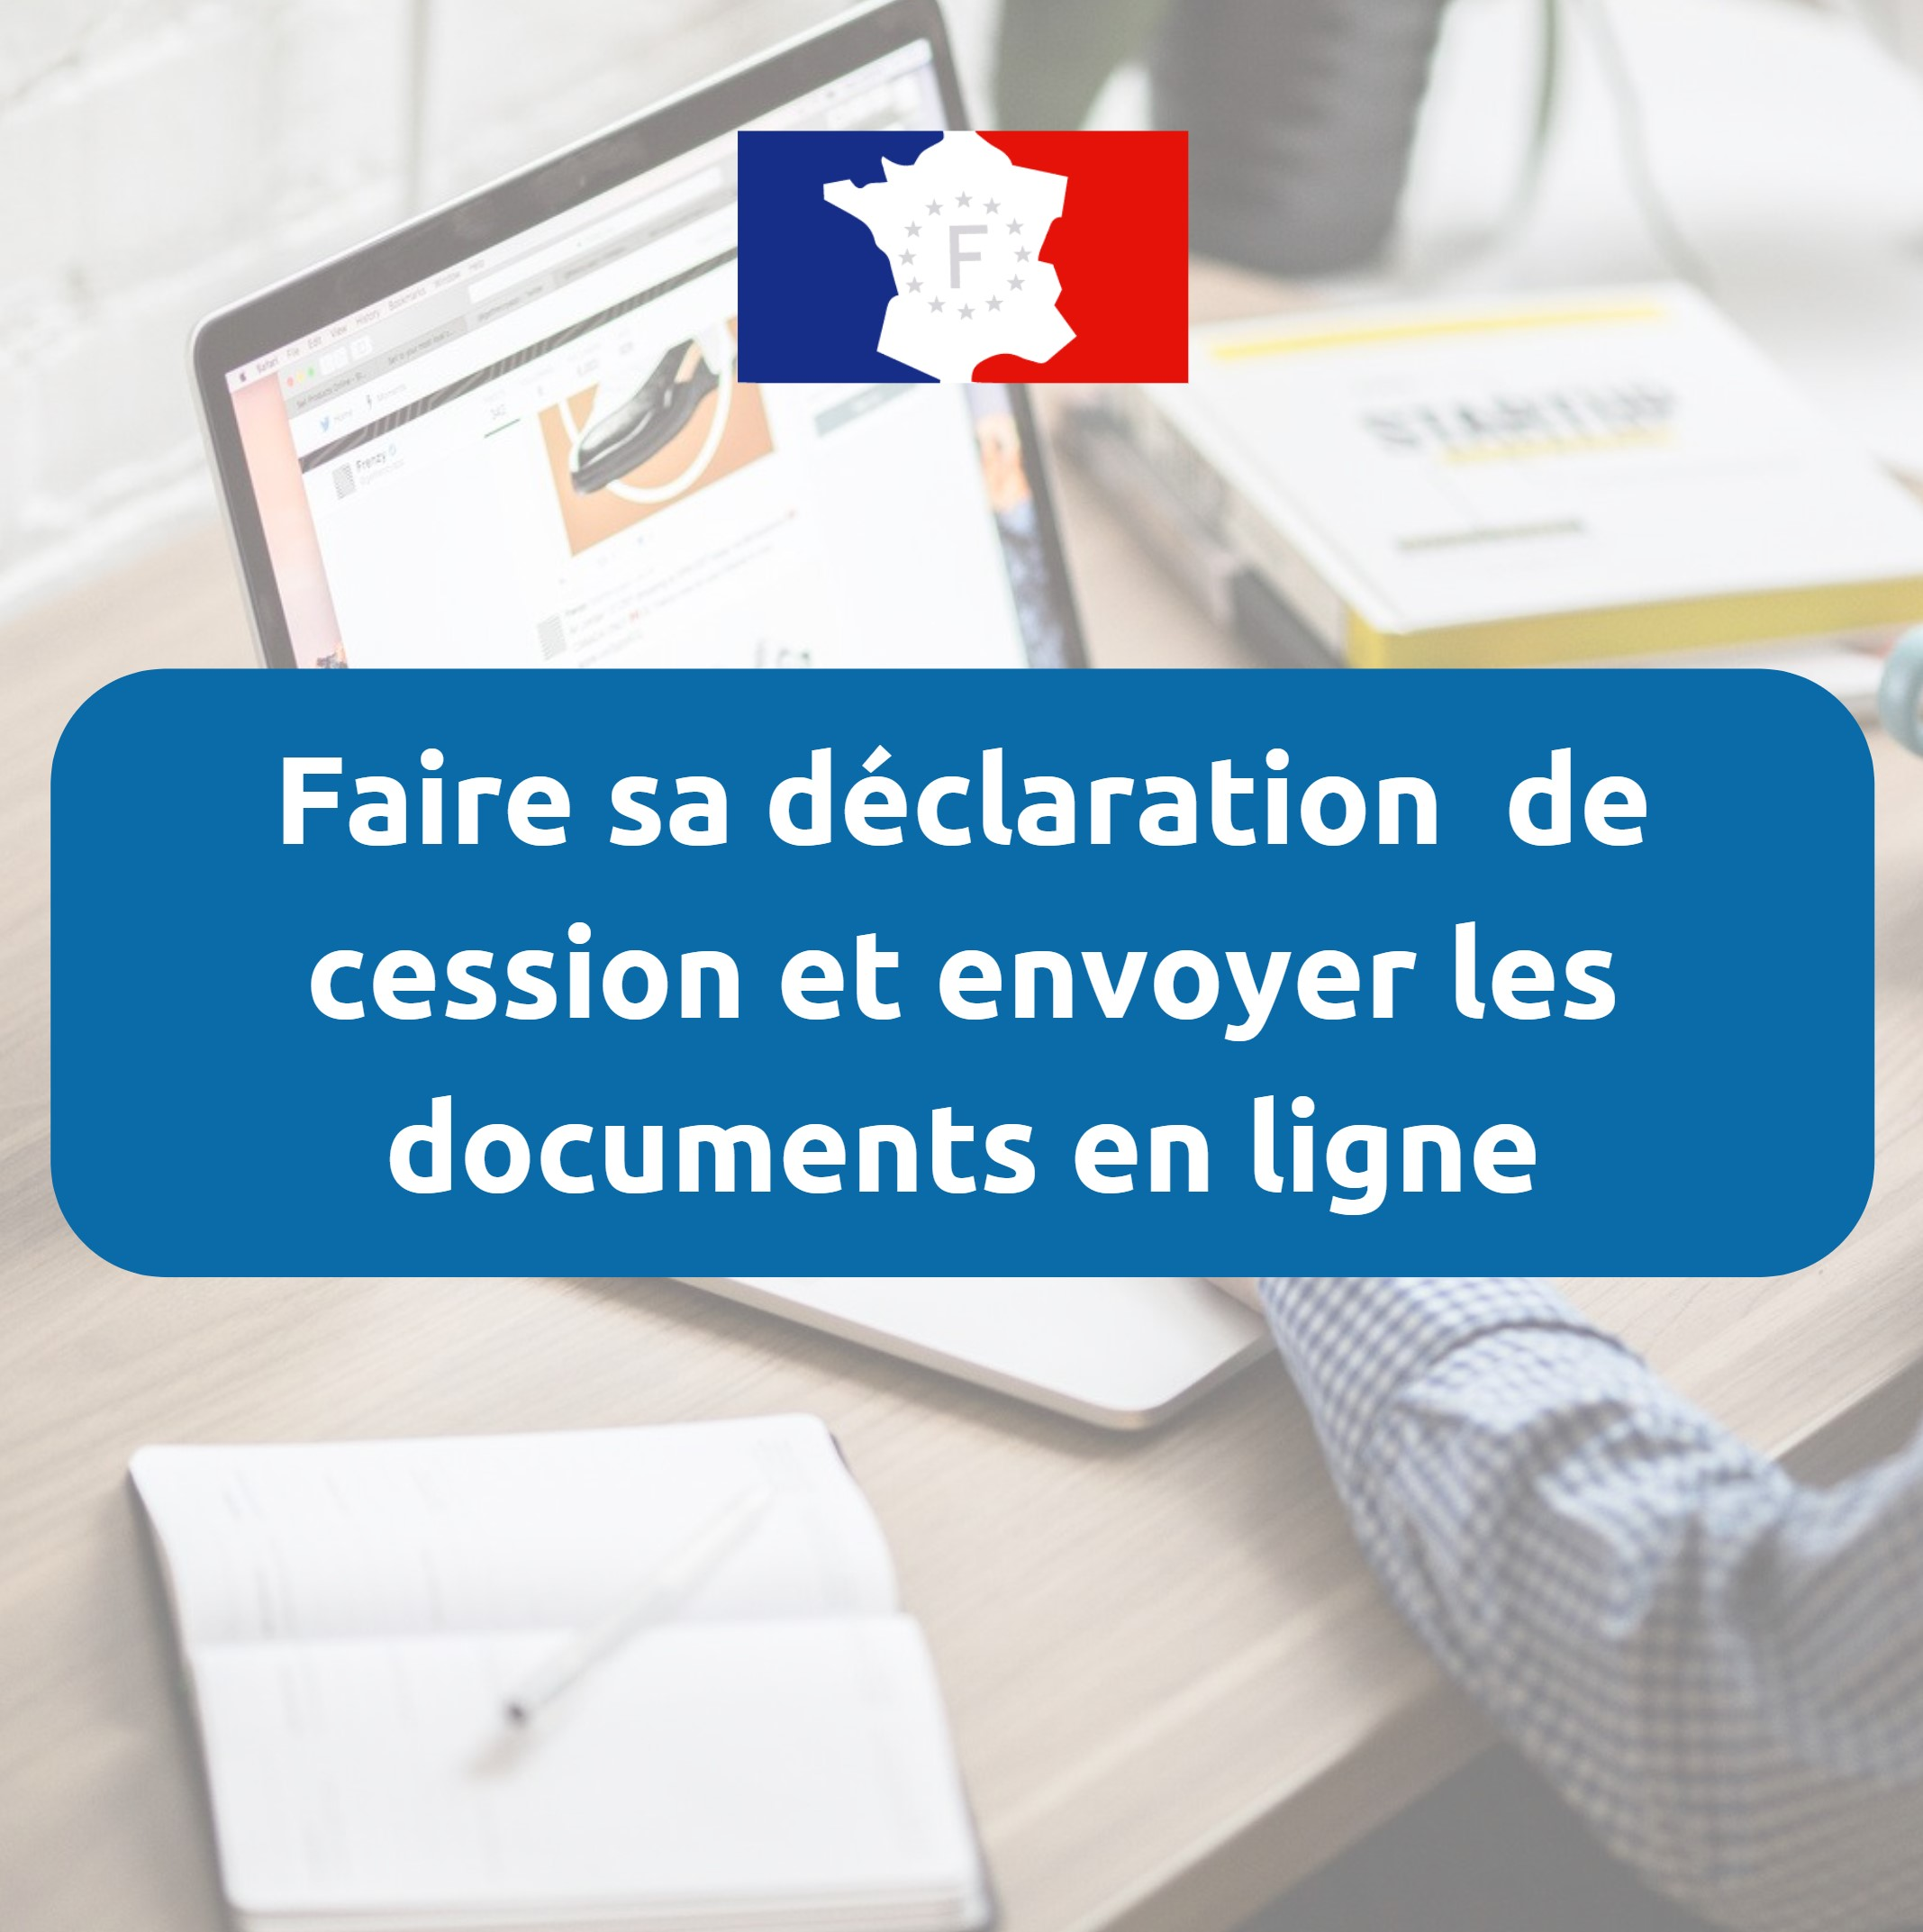 Déclaration de cession documents à fournir